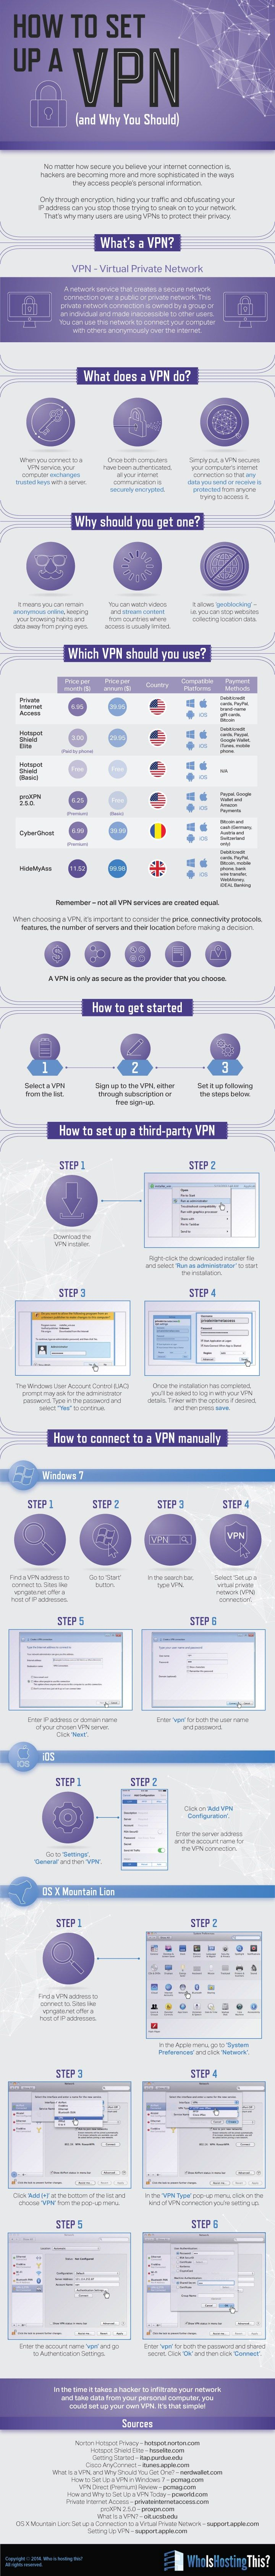 How to Set Up a VPN (and Why You Should) - Via Who Is Hosting This: The Blog